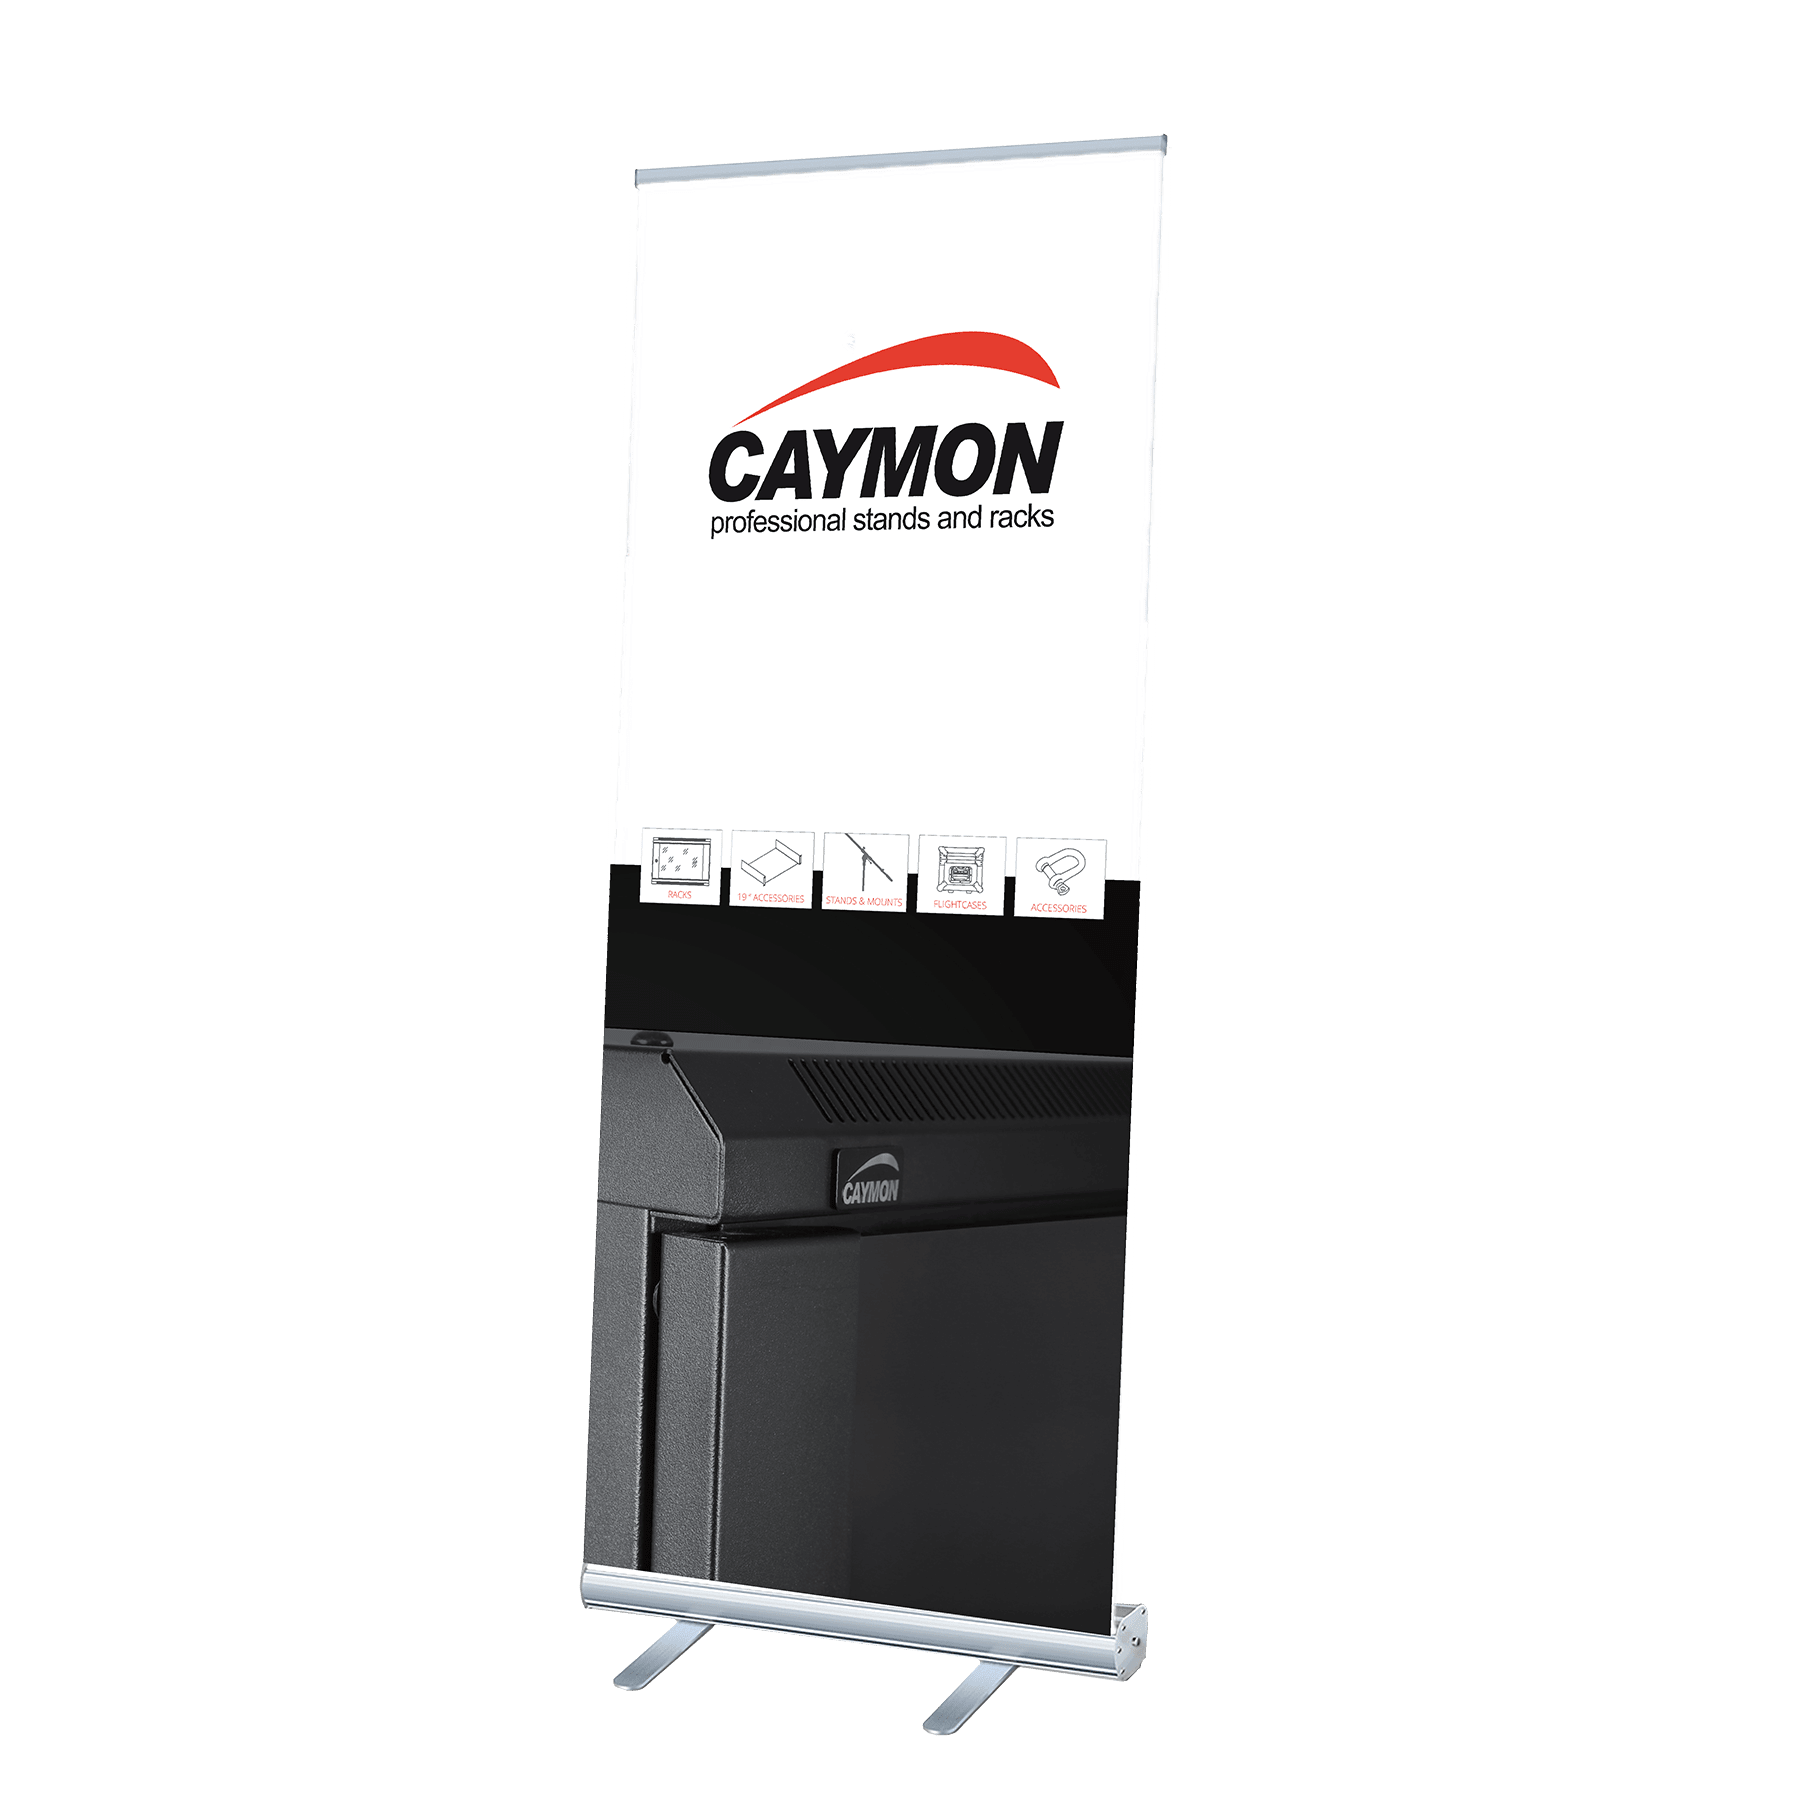 PROMO4092 - CAYMON roll-up display stand  200 x 85 cm